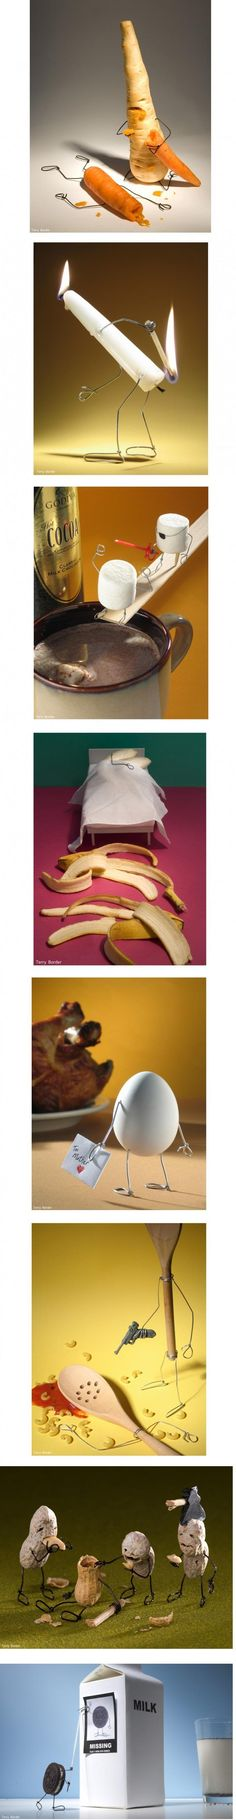 Funny still life pictures